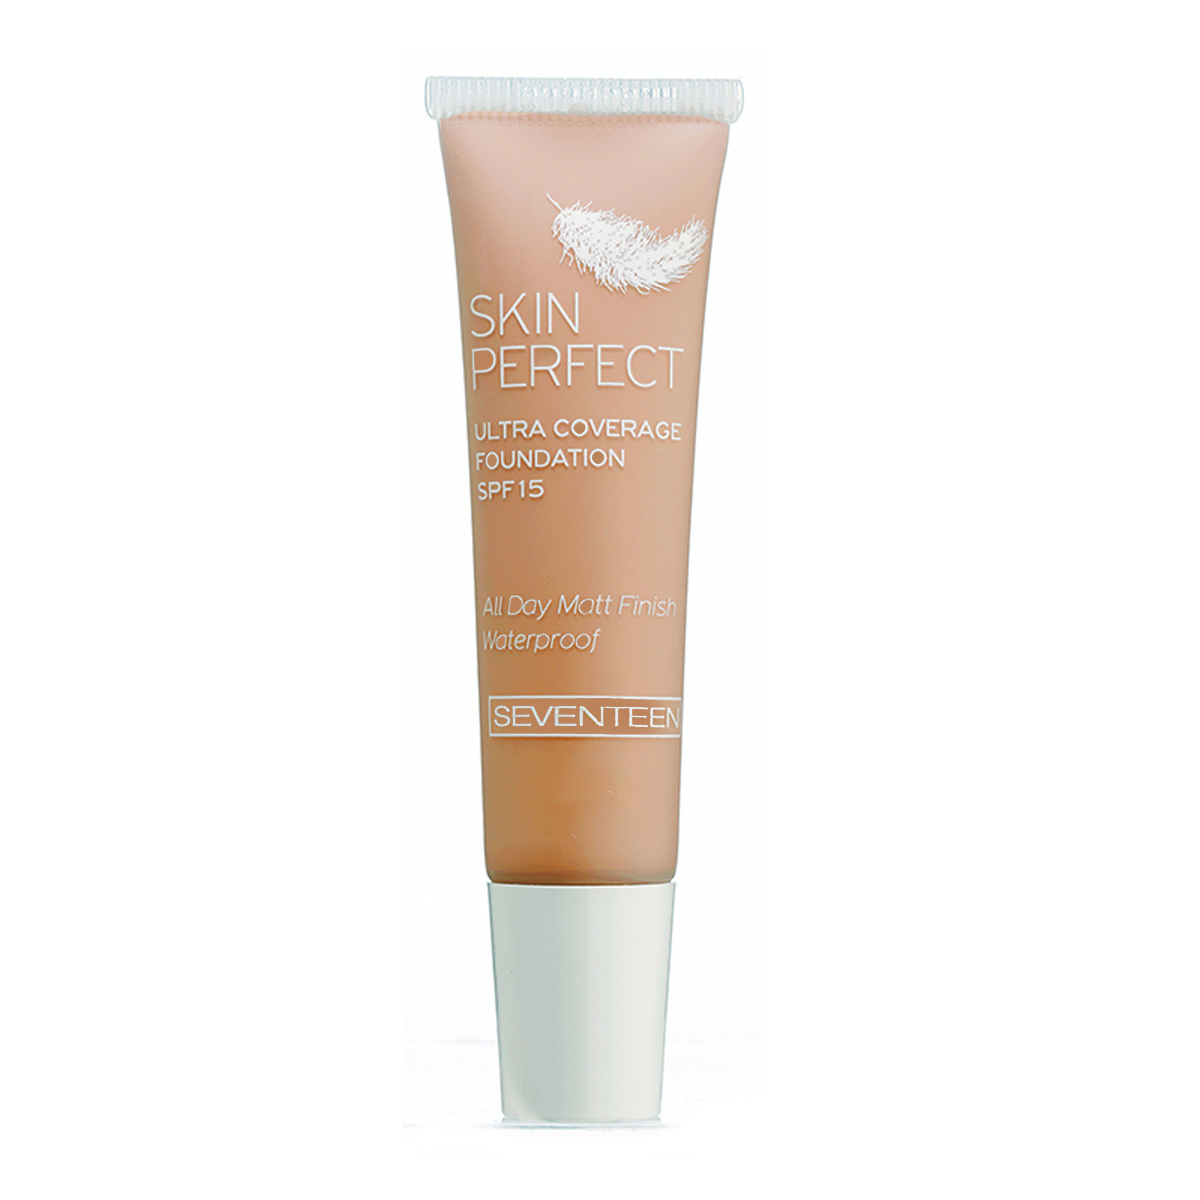 Skin Perfect Ultra Coverage Waterproof Foundation Travel Size